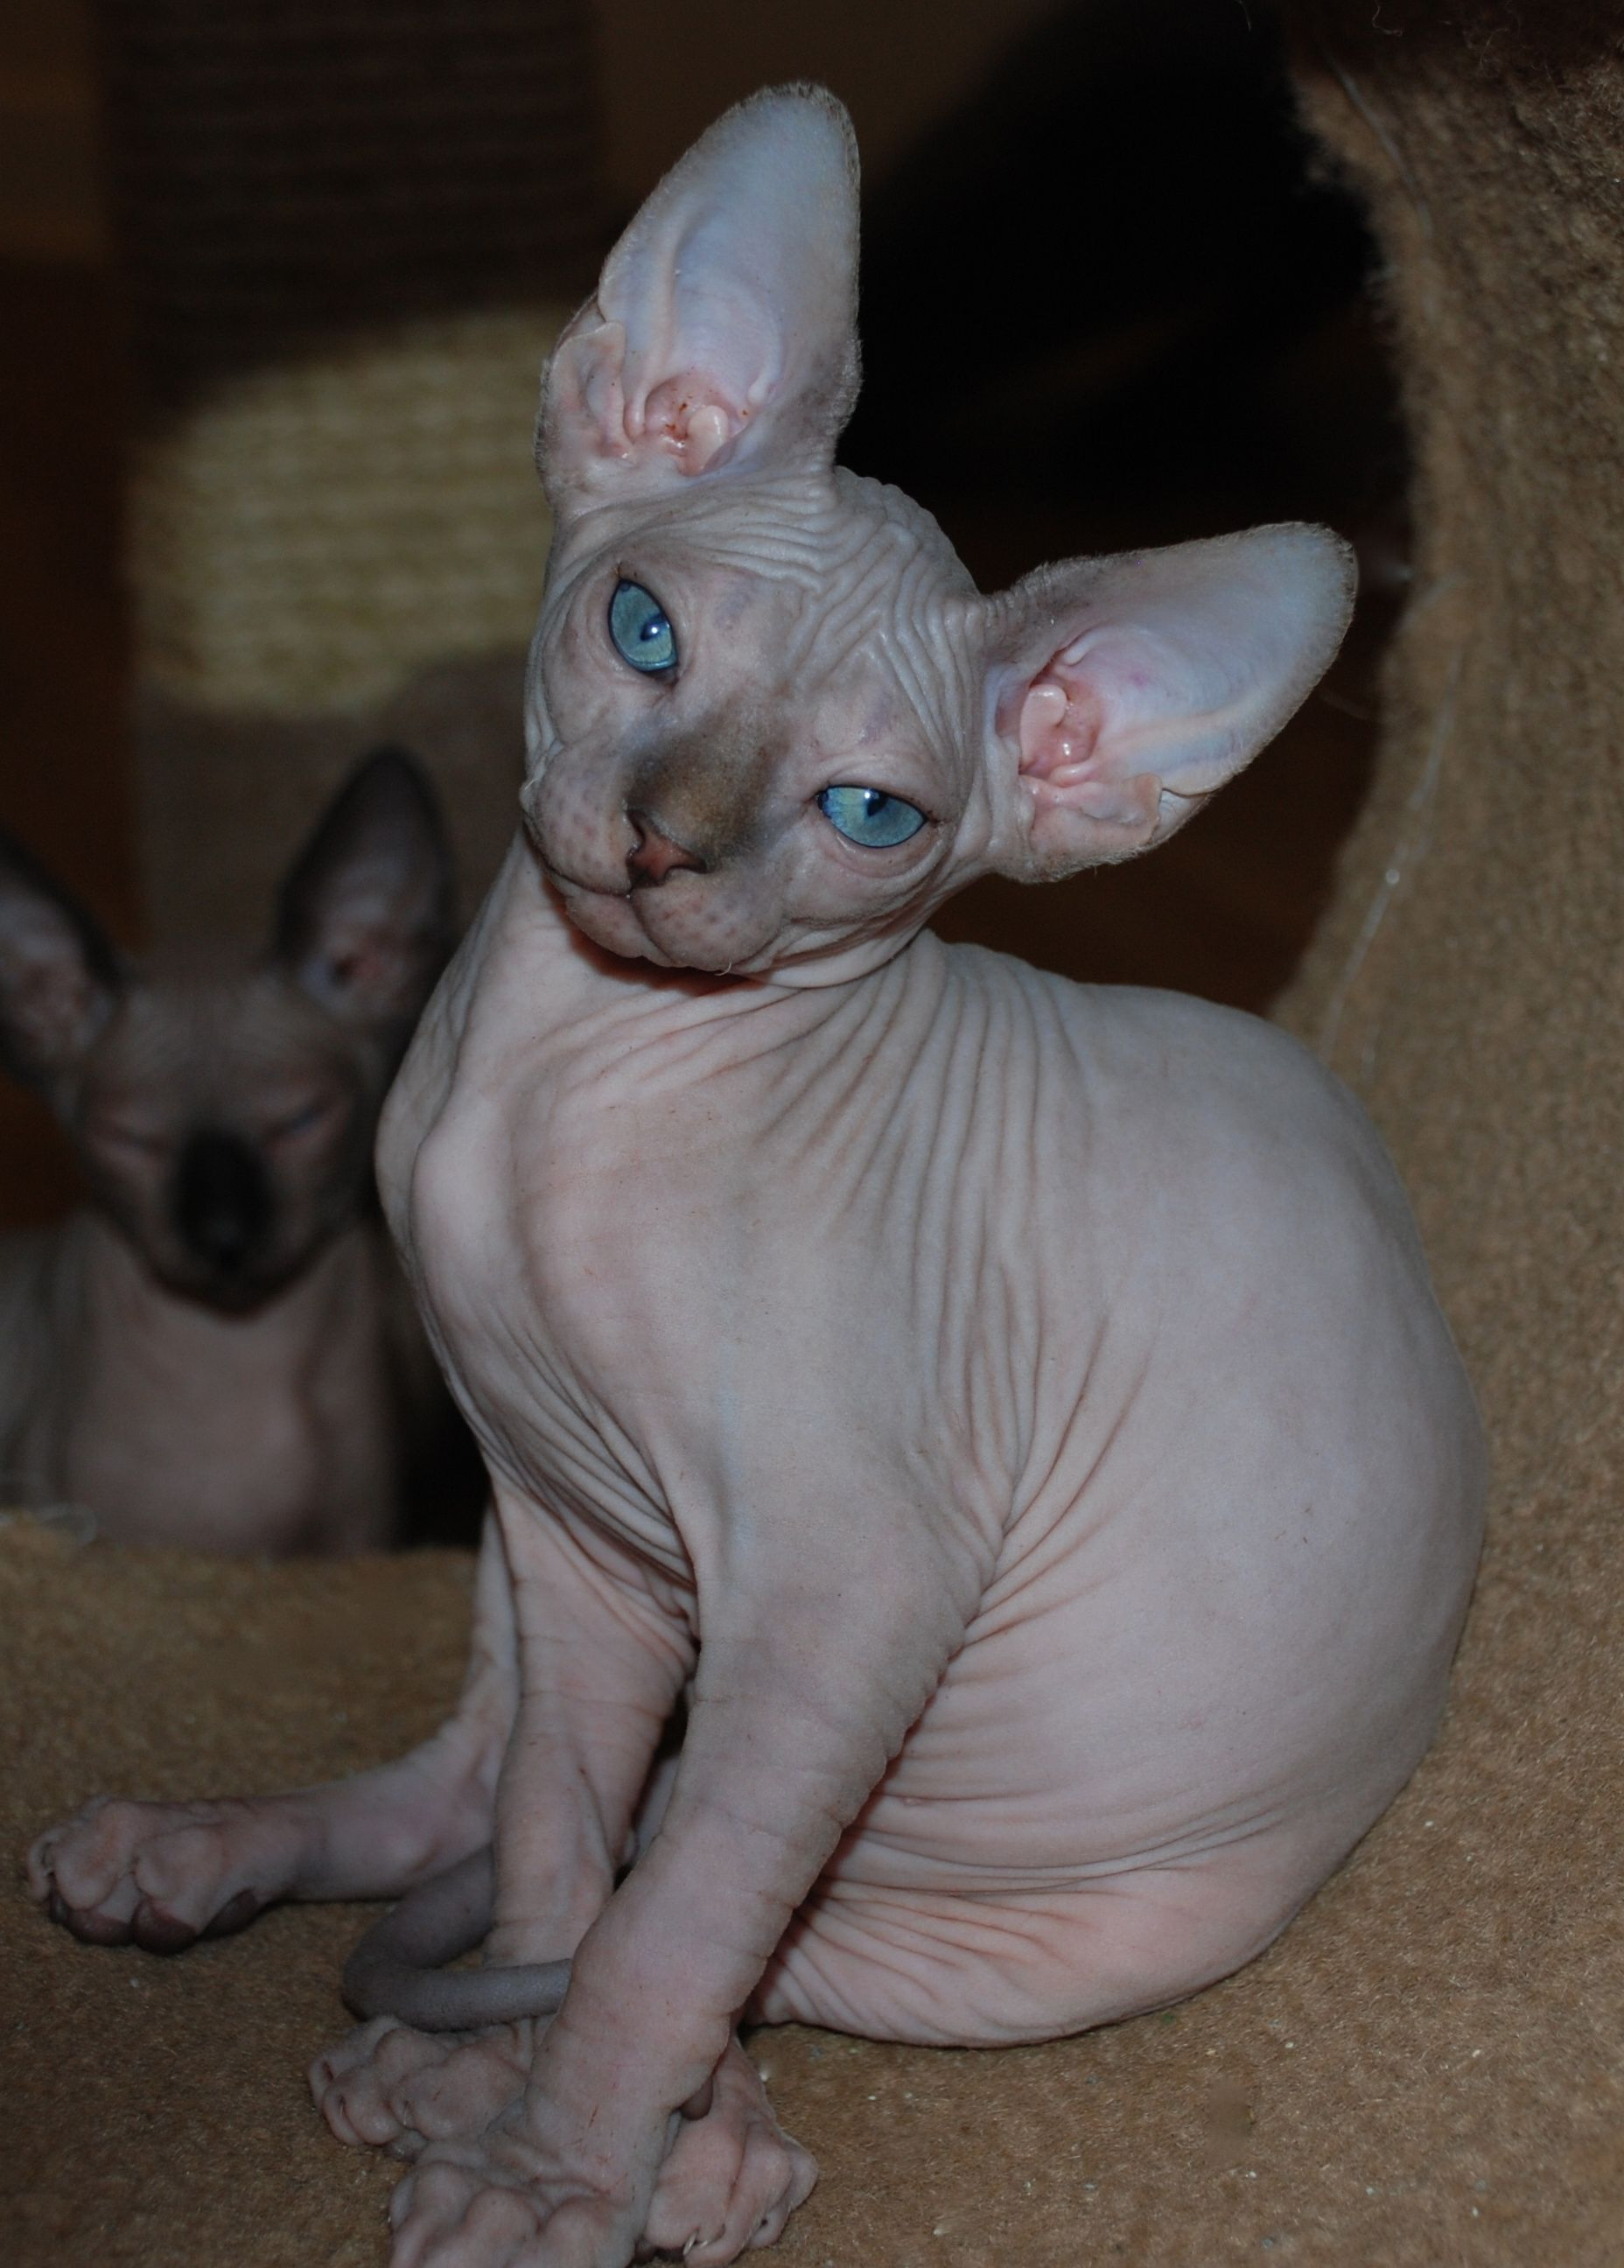 Sphynx Breeder Sphynx Pictures Hairless Cats Sphynx Cats N O C O A T K I T T Y Hairless Kitten Sphynx Cat Hairless Cat